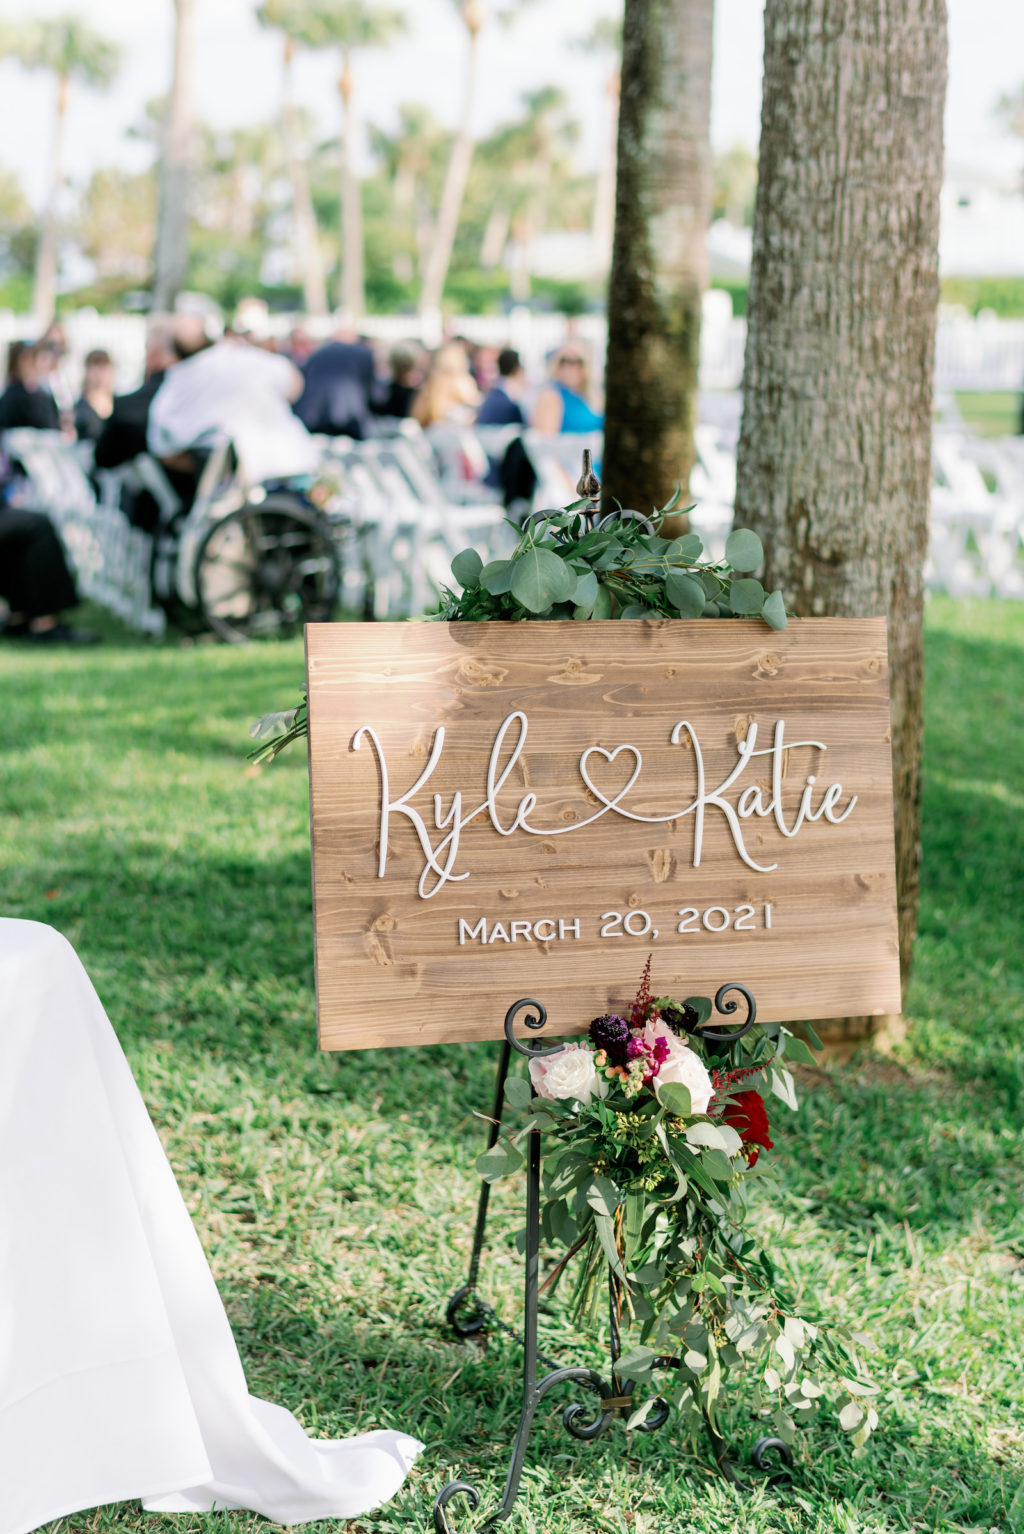 Rustic Romantic Wedding Ceremony Decor, Wooden Sign with White Laser Cut Personalized Signage